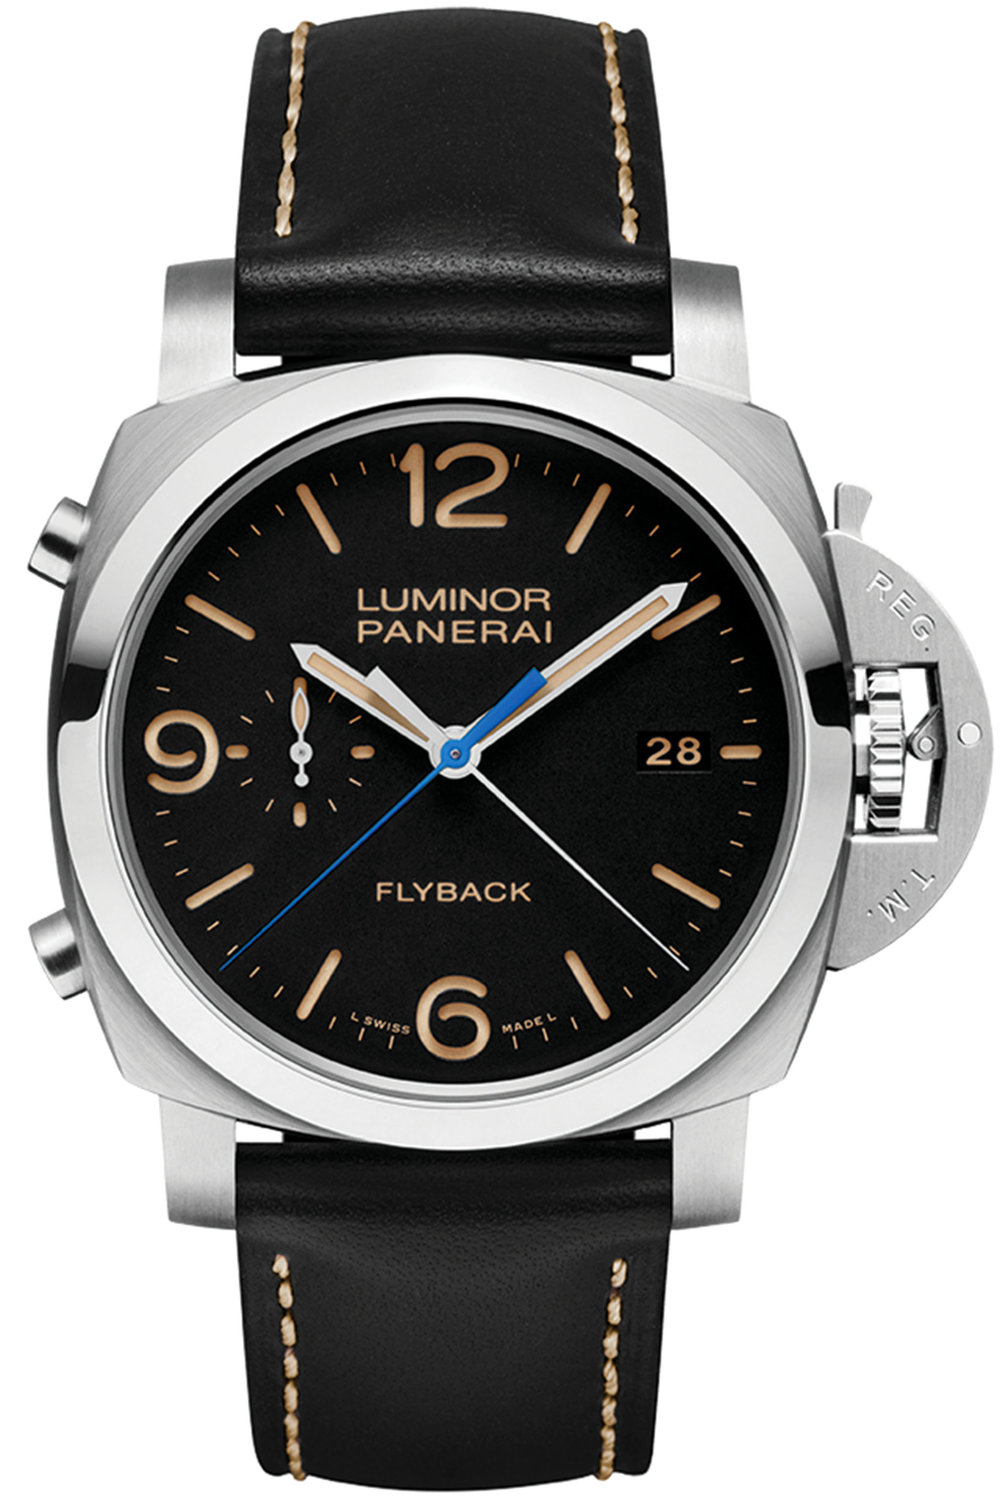 3.Luminor 1950 3 Days Chrono Flyback Automatic Acciaio – 44mm by Panerai $14,200,  palladiocanada.com